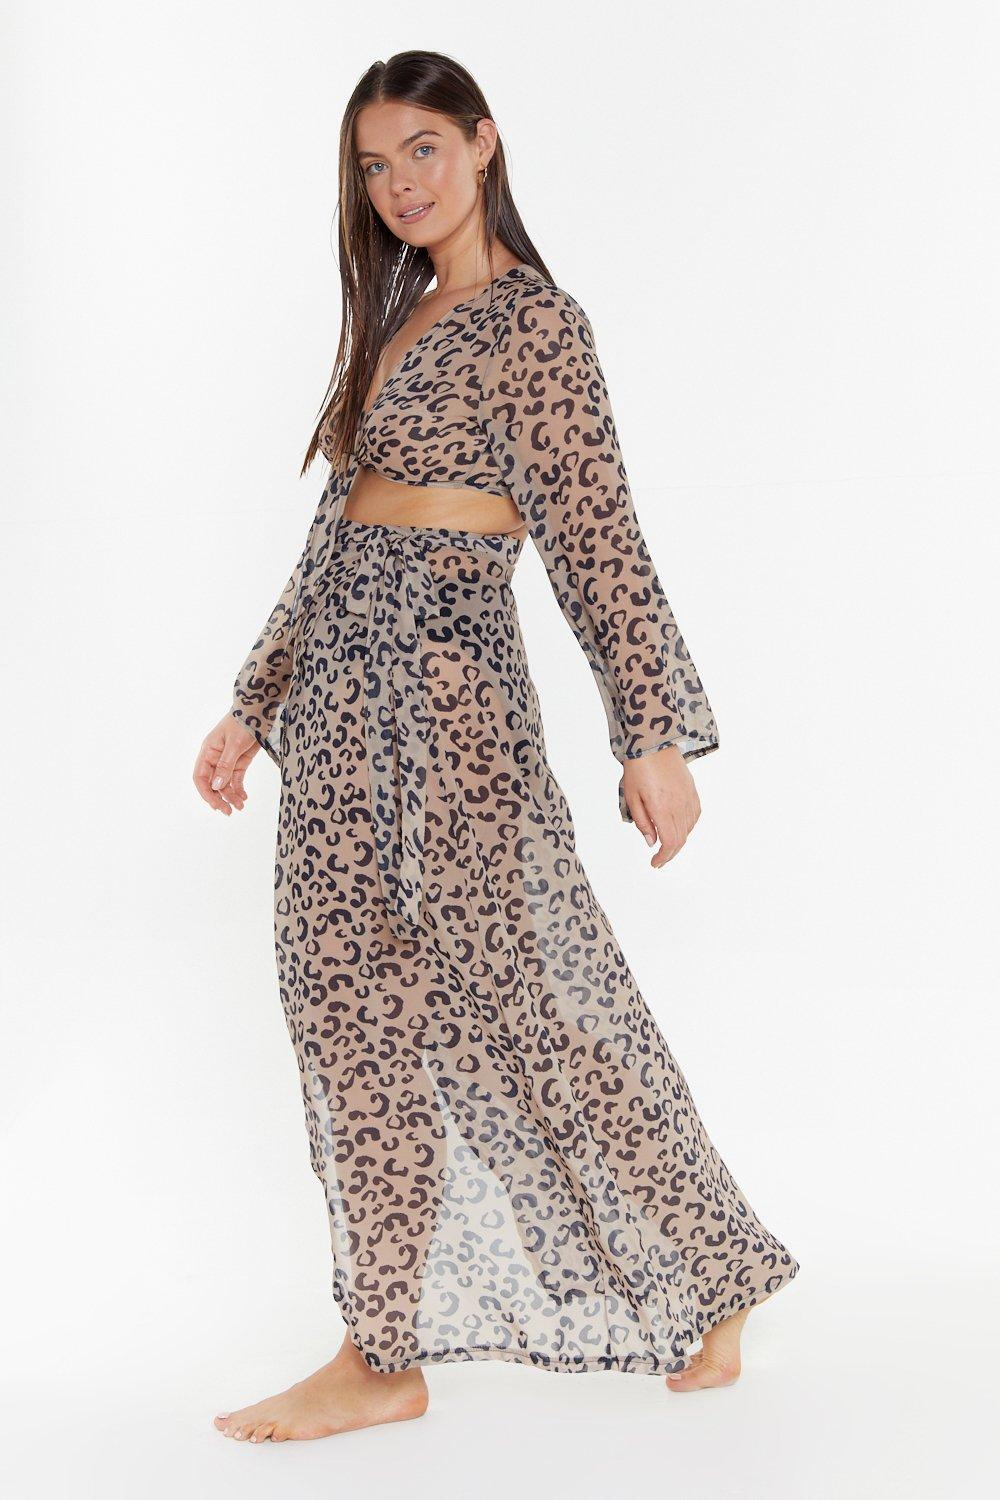 c69062ded6bf Charmed I'm Shore Leopard Cover-Up Plus Skirt | Shop Clothes at ...